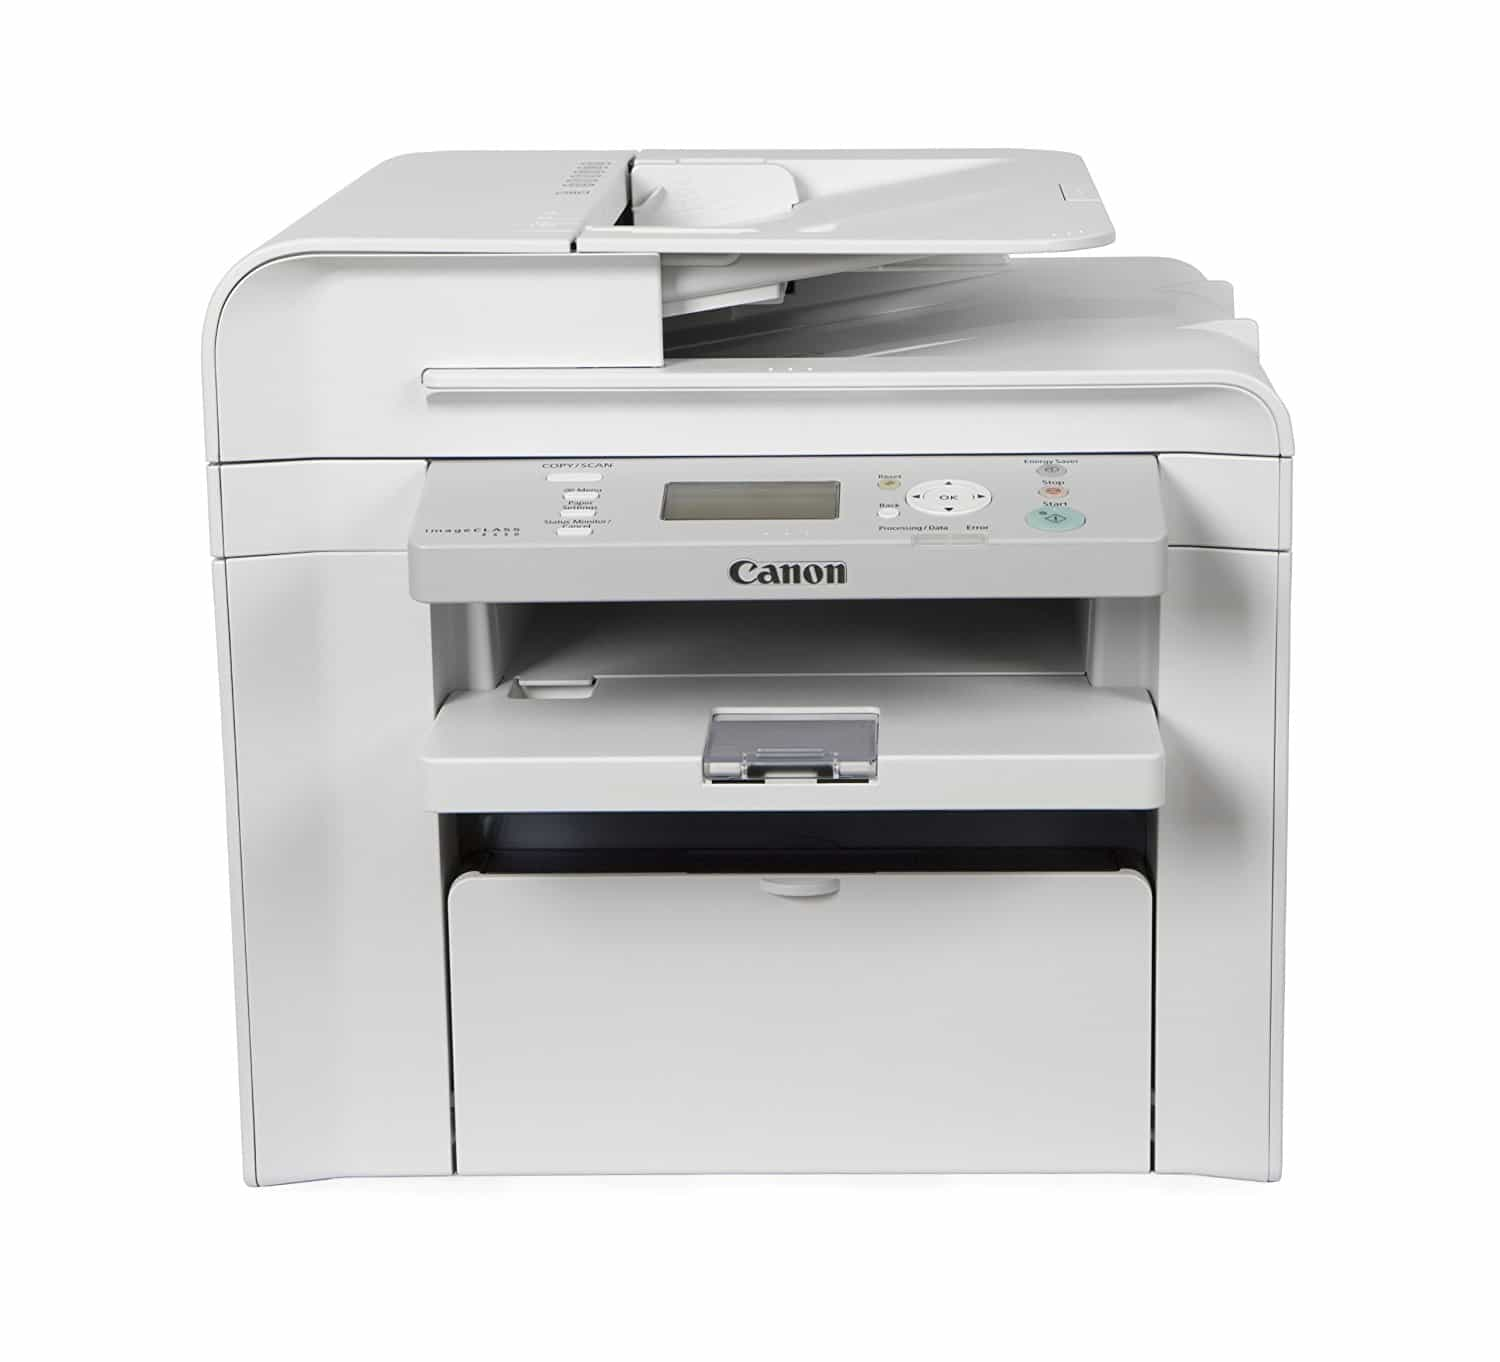 Canon copier for small business